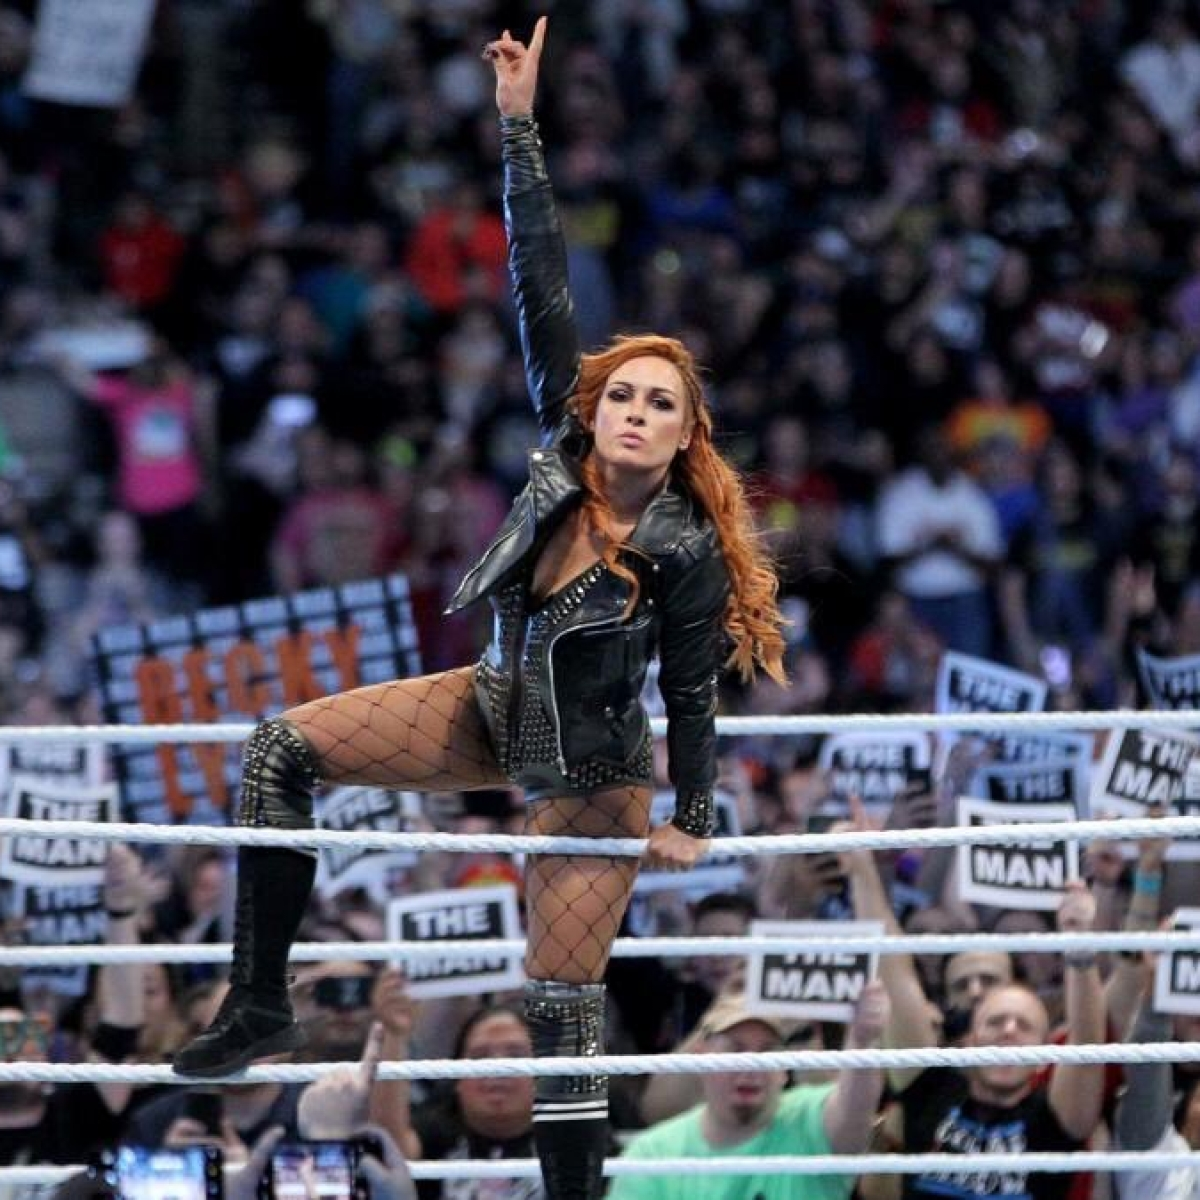 After Bautista, WWE diva Becky Lynch to become a part of Marvel Cinematic Universe?